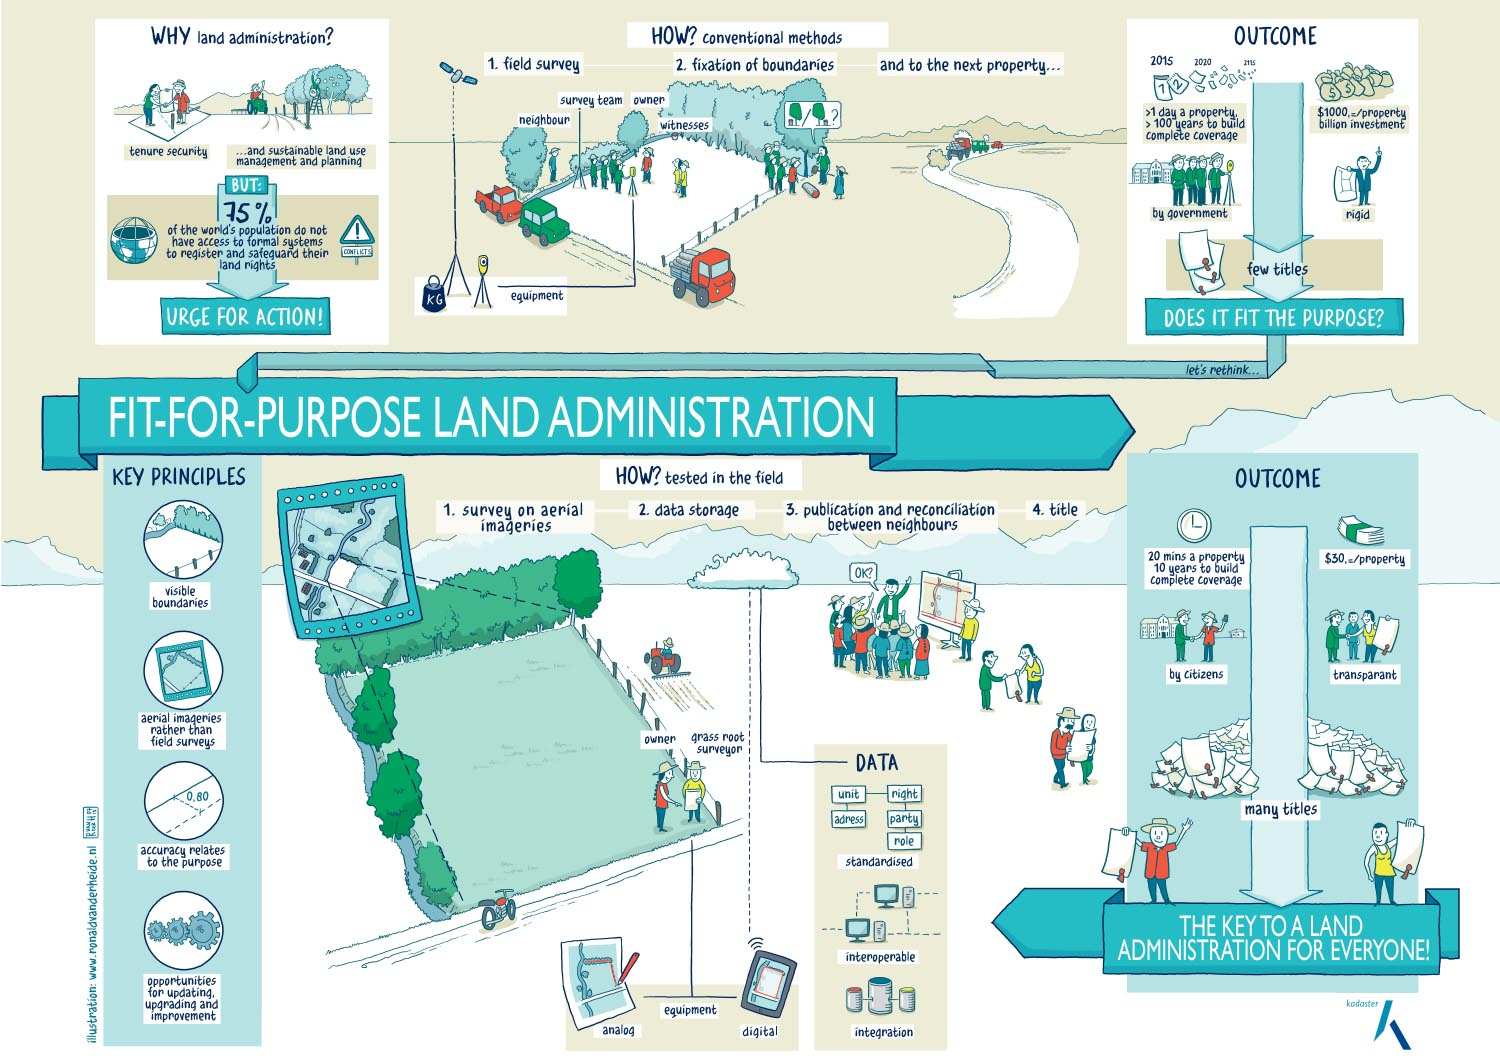 Fit-for-purpose land administration. Ronald van der Heide is illustrator, infographic artist and graphic facilitator. Infographics on land administration. Theme's are sustainability, energy, fair trade, landscape